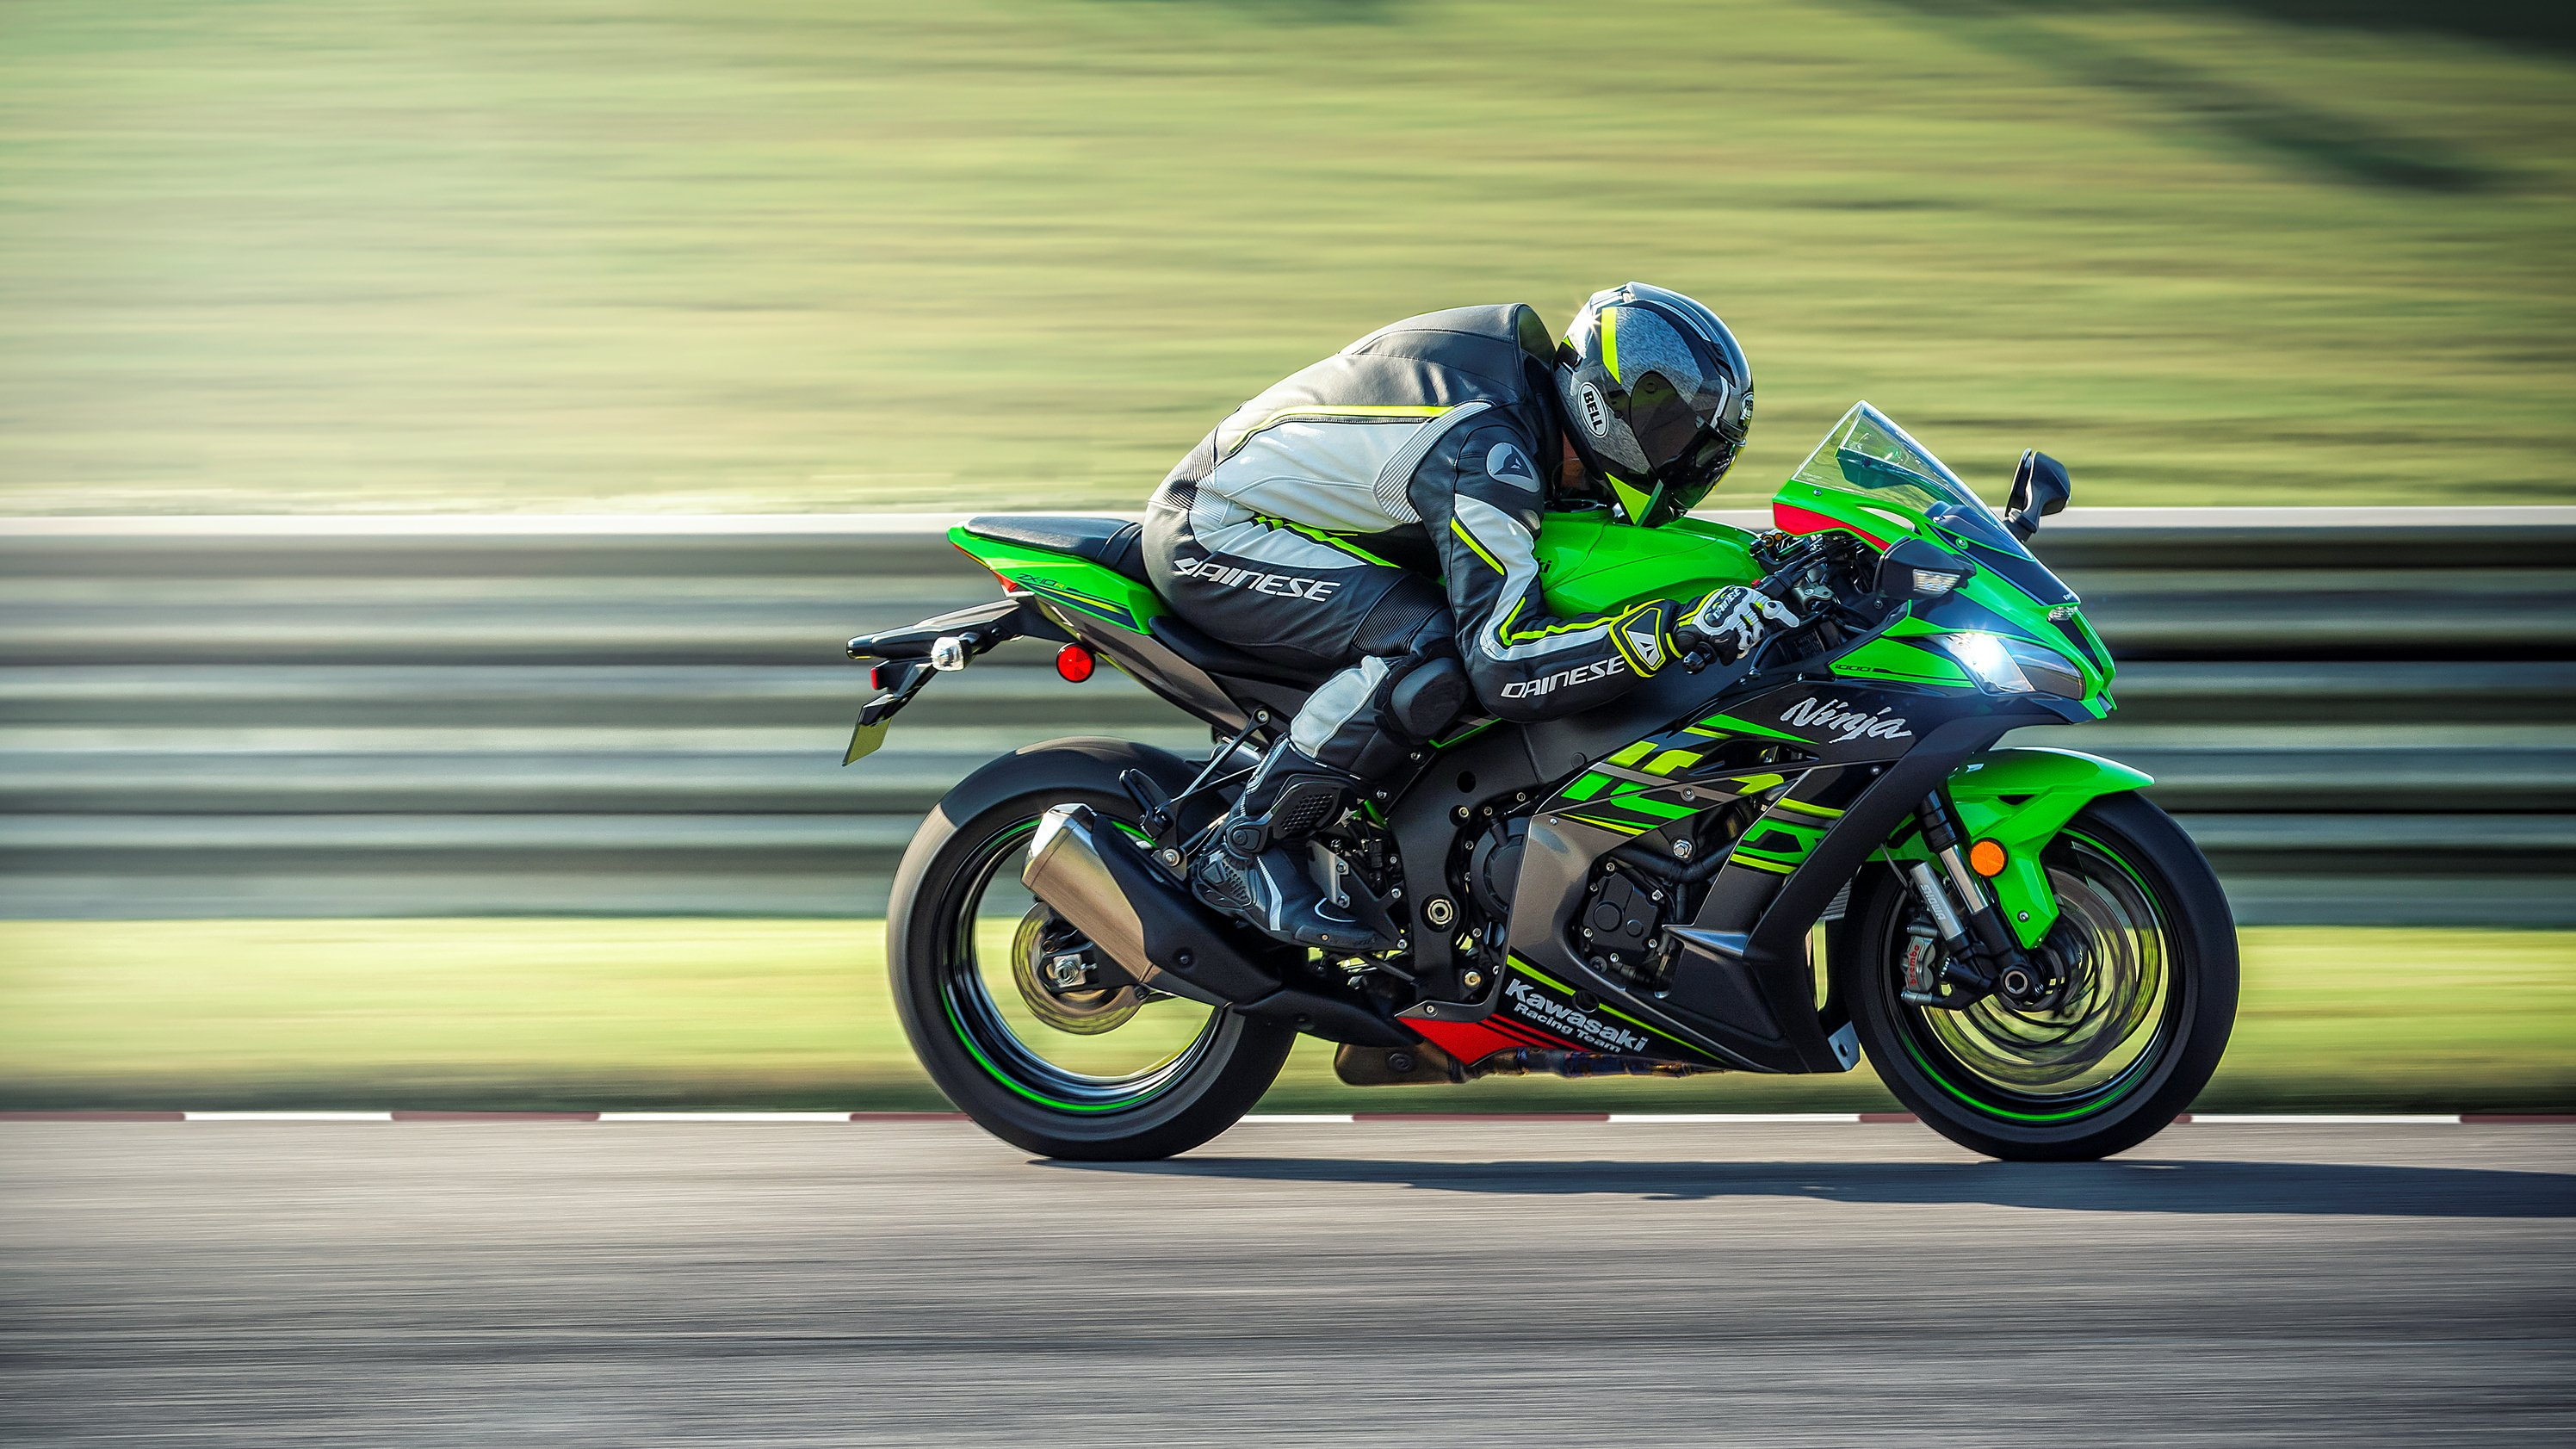 Zx 10r Wallpapers Top Free Zx 10r Backgrounds Wallpaperaccess